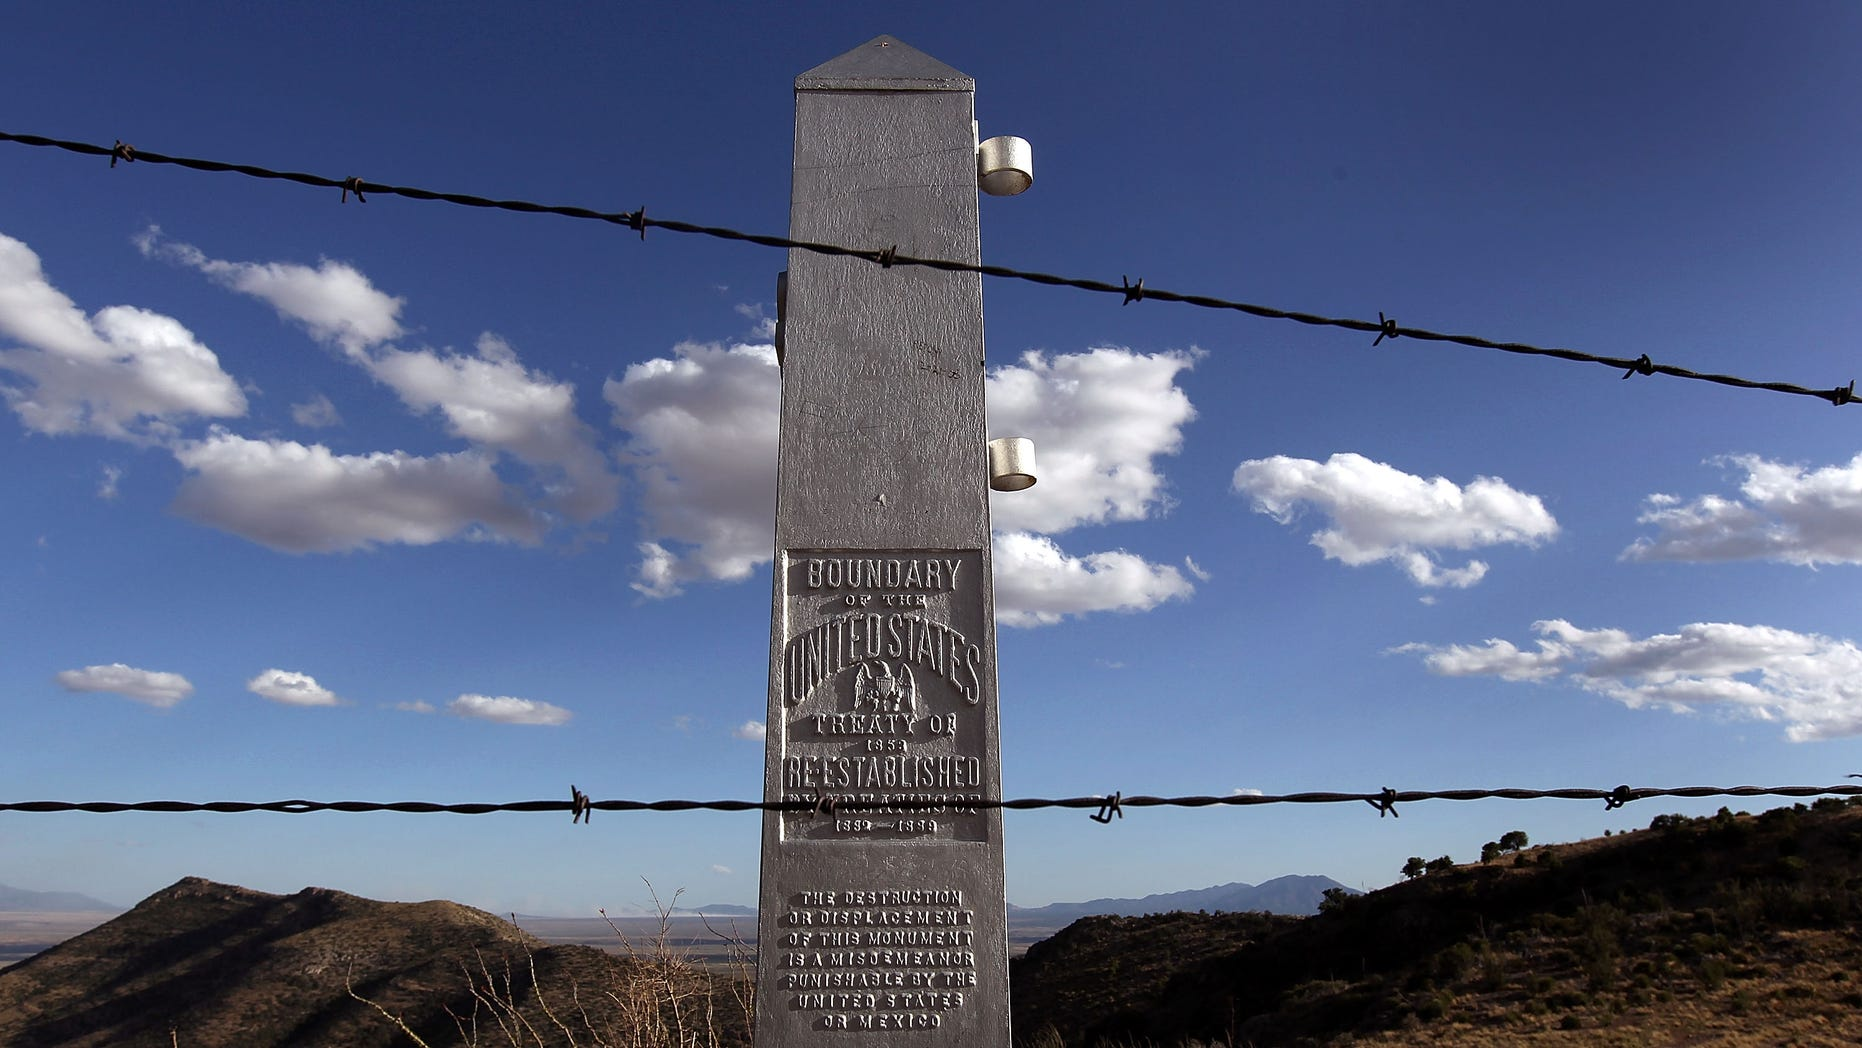 MONTEZUMA PASS, AZ - MAY 02:  An obelisk and a barbed wire fence mark the border between the United States and Mexico on May 2, 2010 at Montezuma Pass, Arizona. Although  the U.S. government has spent billions of dollars constructing border defenses in the last decade, critics say that Arizona's border with Mexico was left with less protection, compared with California and Texas. Proponents of Arizona's new immigration enforcement law say that federal inaction led to passage of the law, which has raised fears of racial profiling by police against Latinos. (Photo by John Moore/Getty Images)